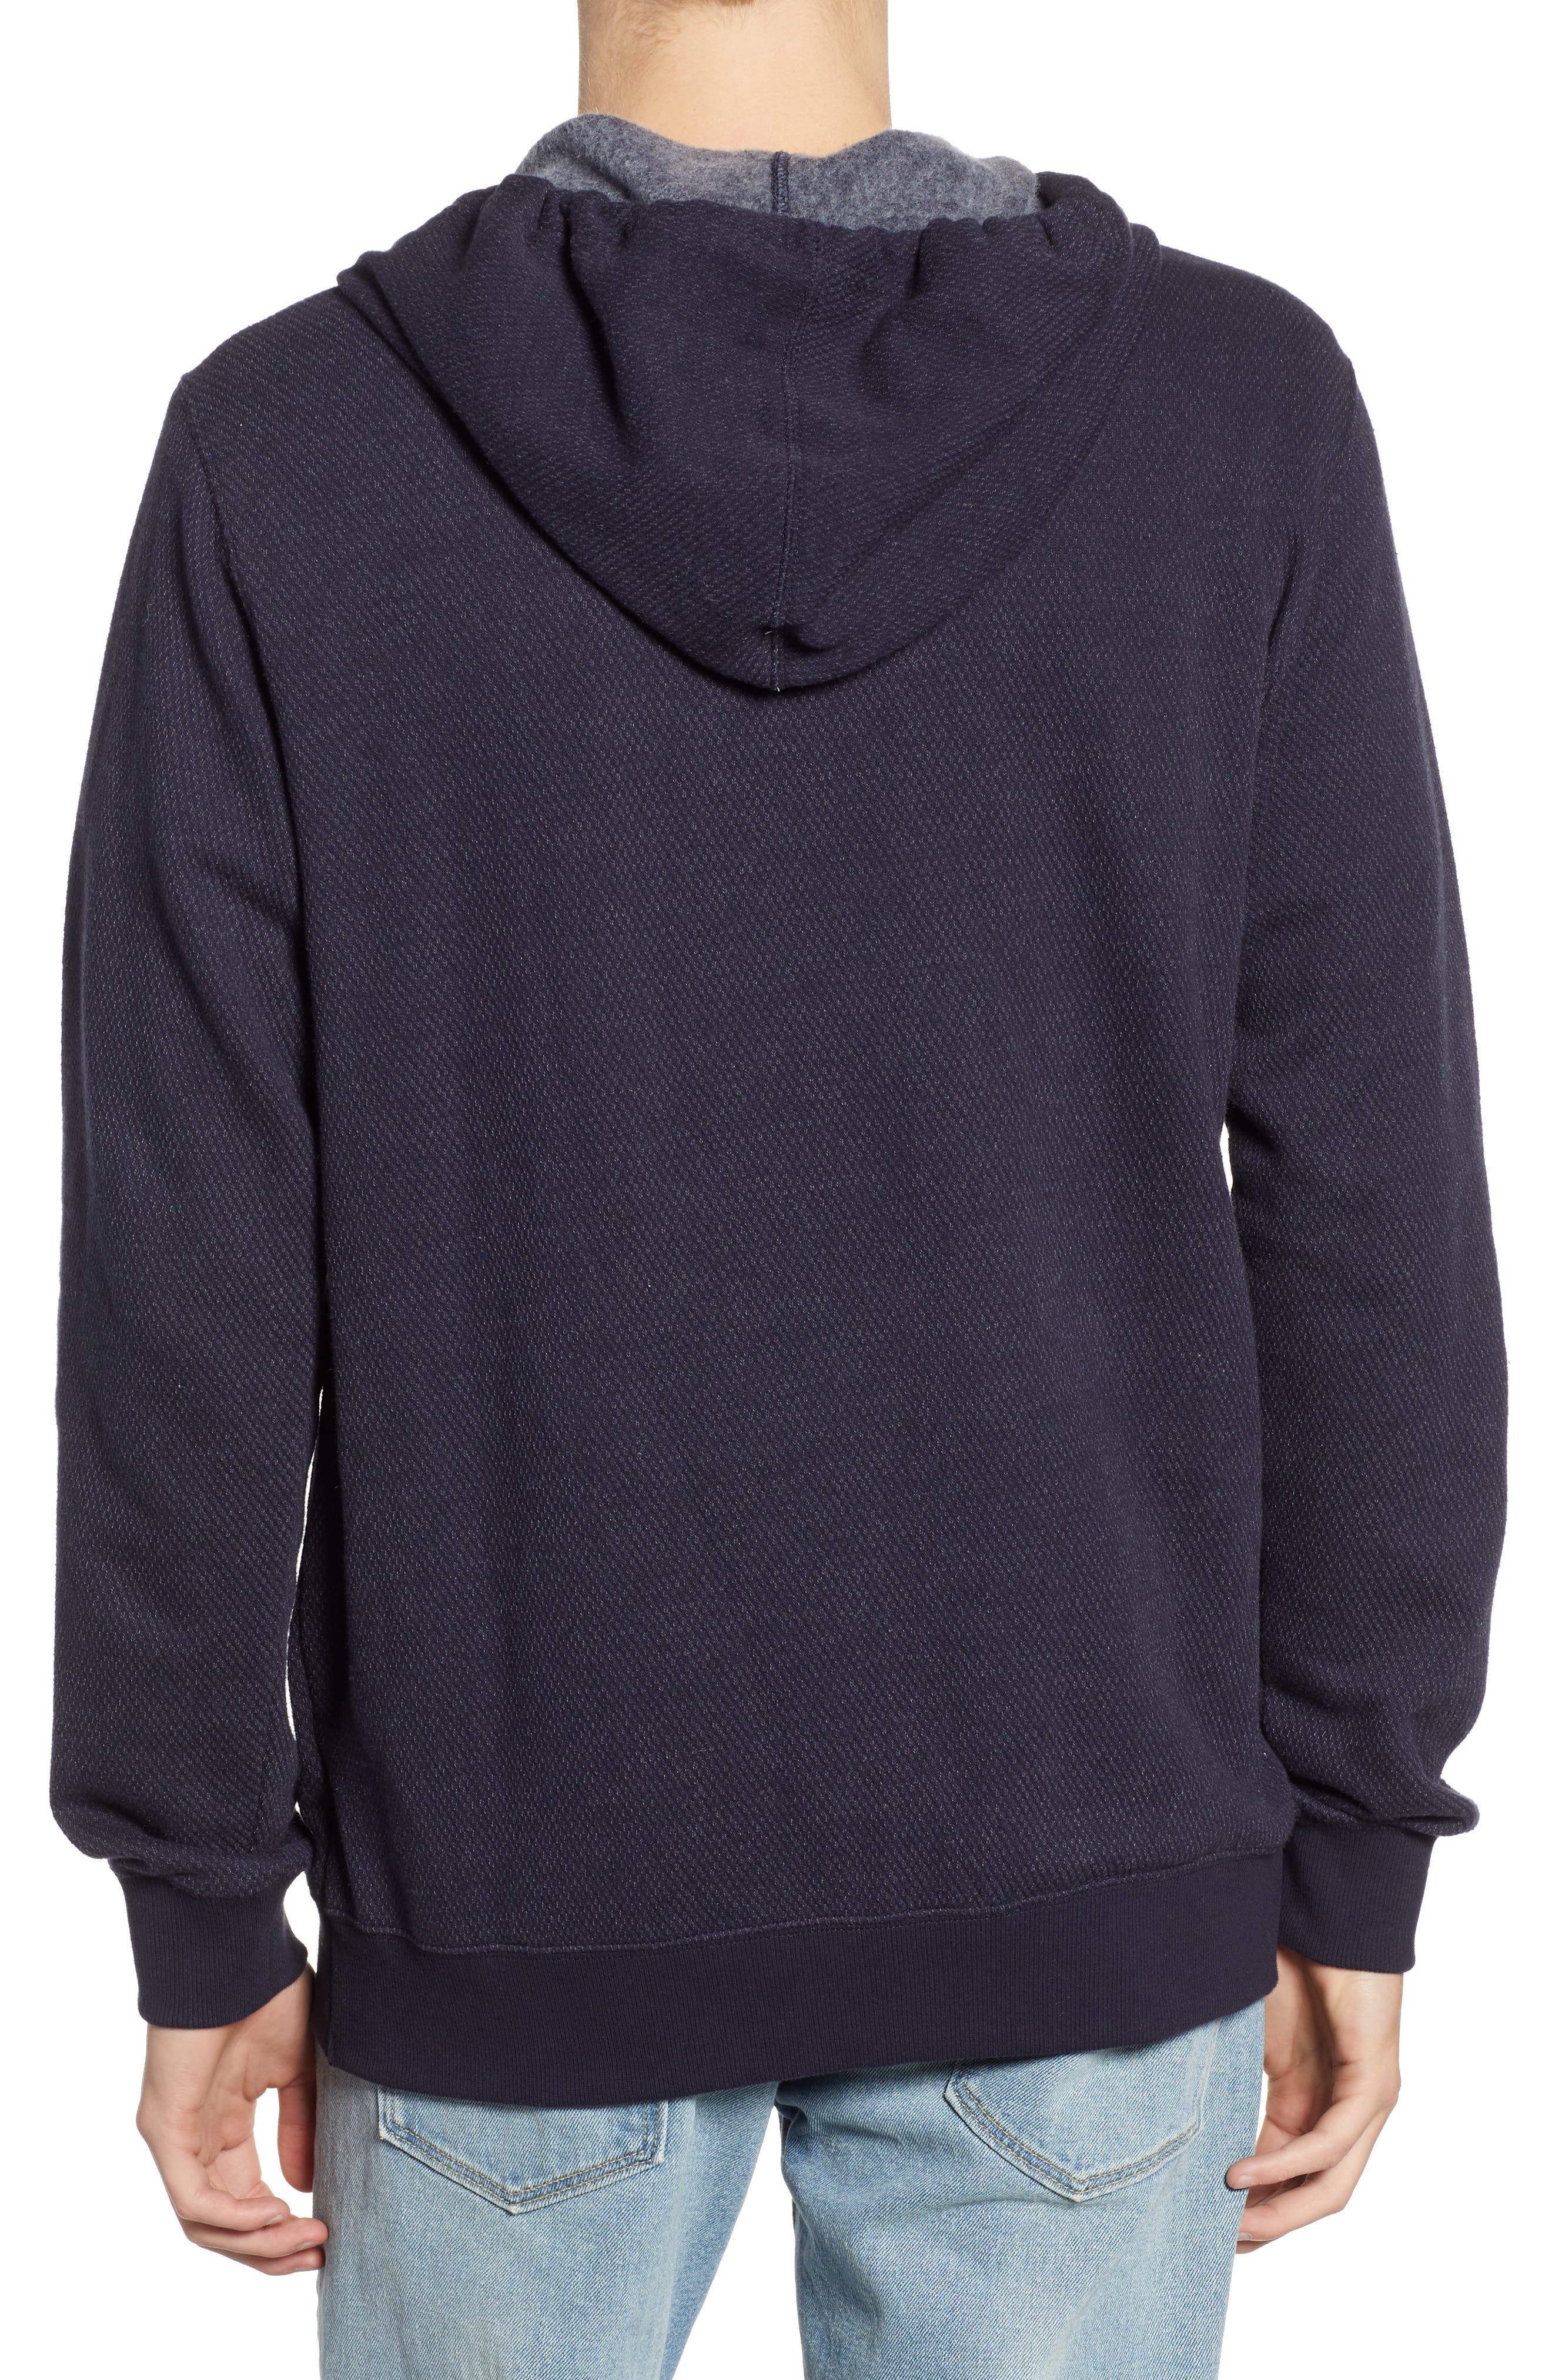 Lupo Pullover Hoodie,                             Alternate thumbnail 2, color,                             NEW NAVY